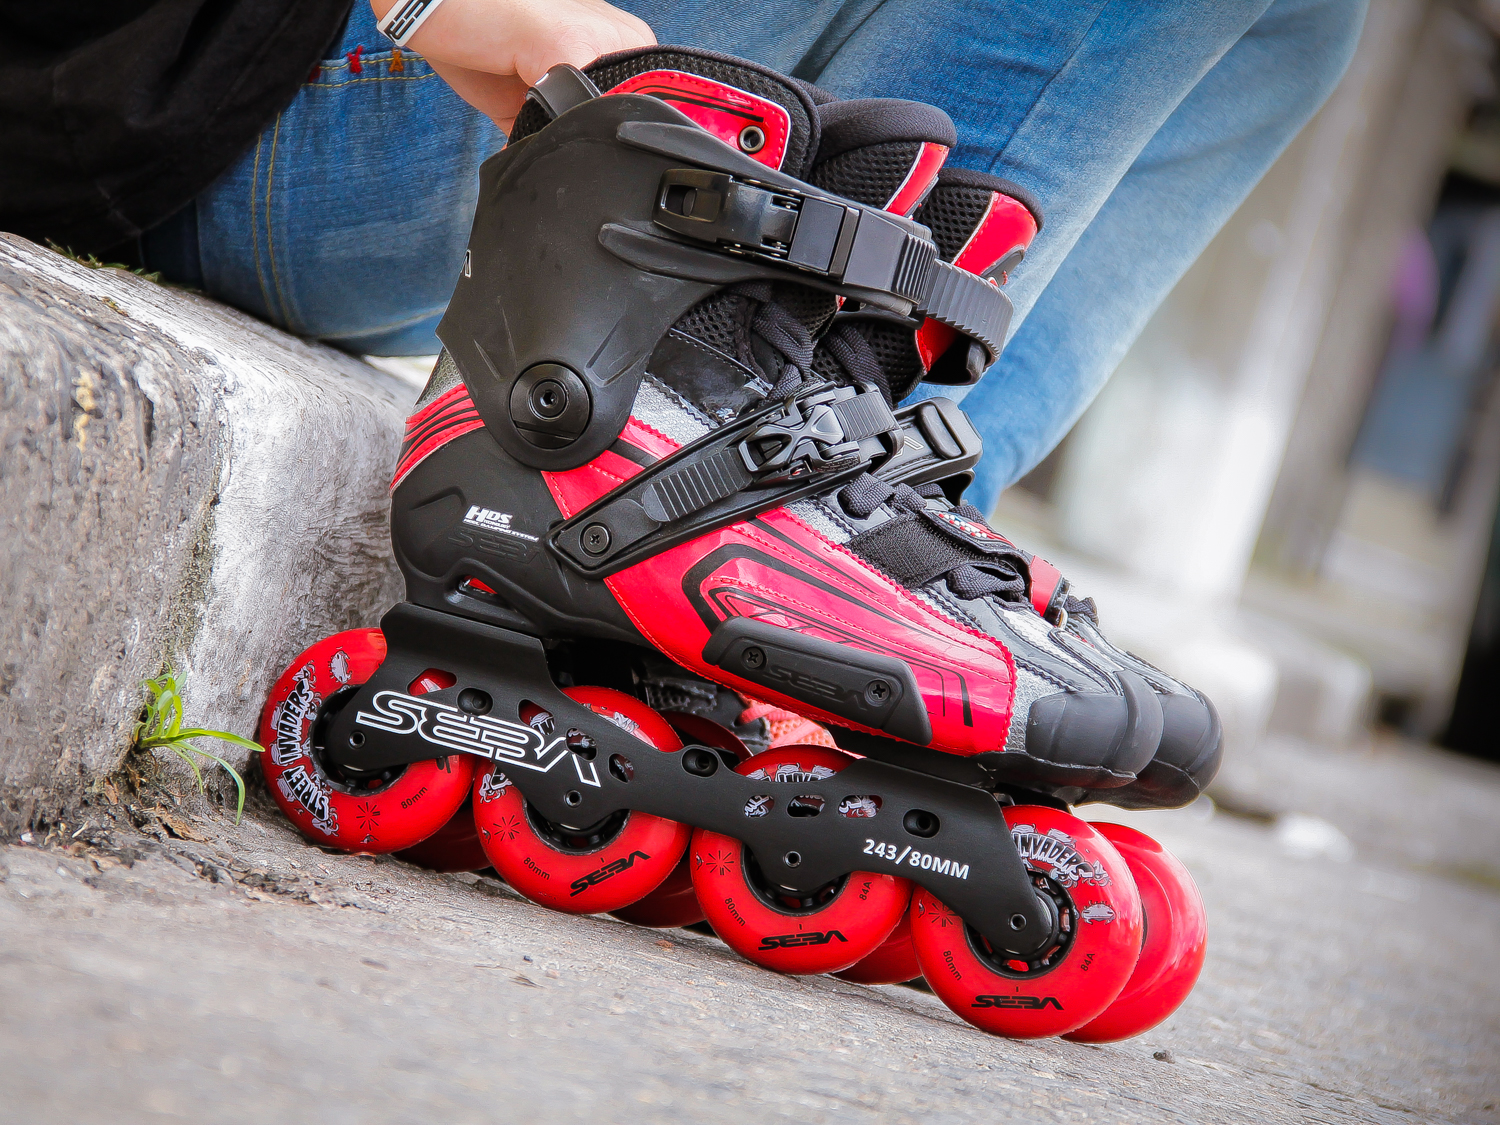 Patins Seba High Light Red - patins para Slalom, Freestyle e Freeride